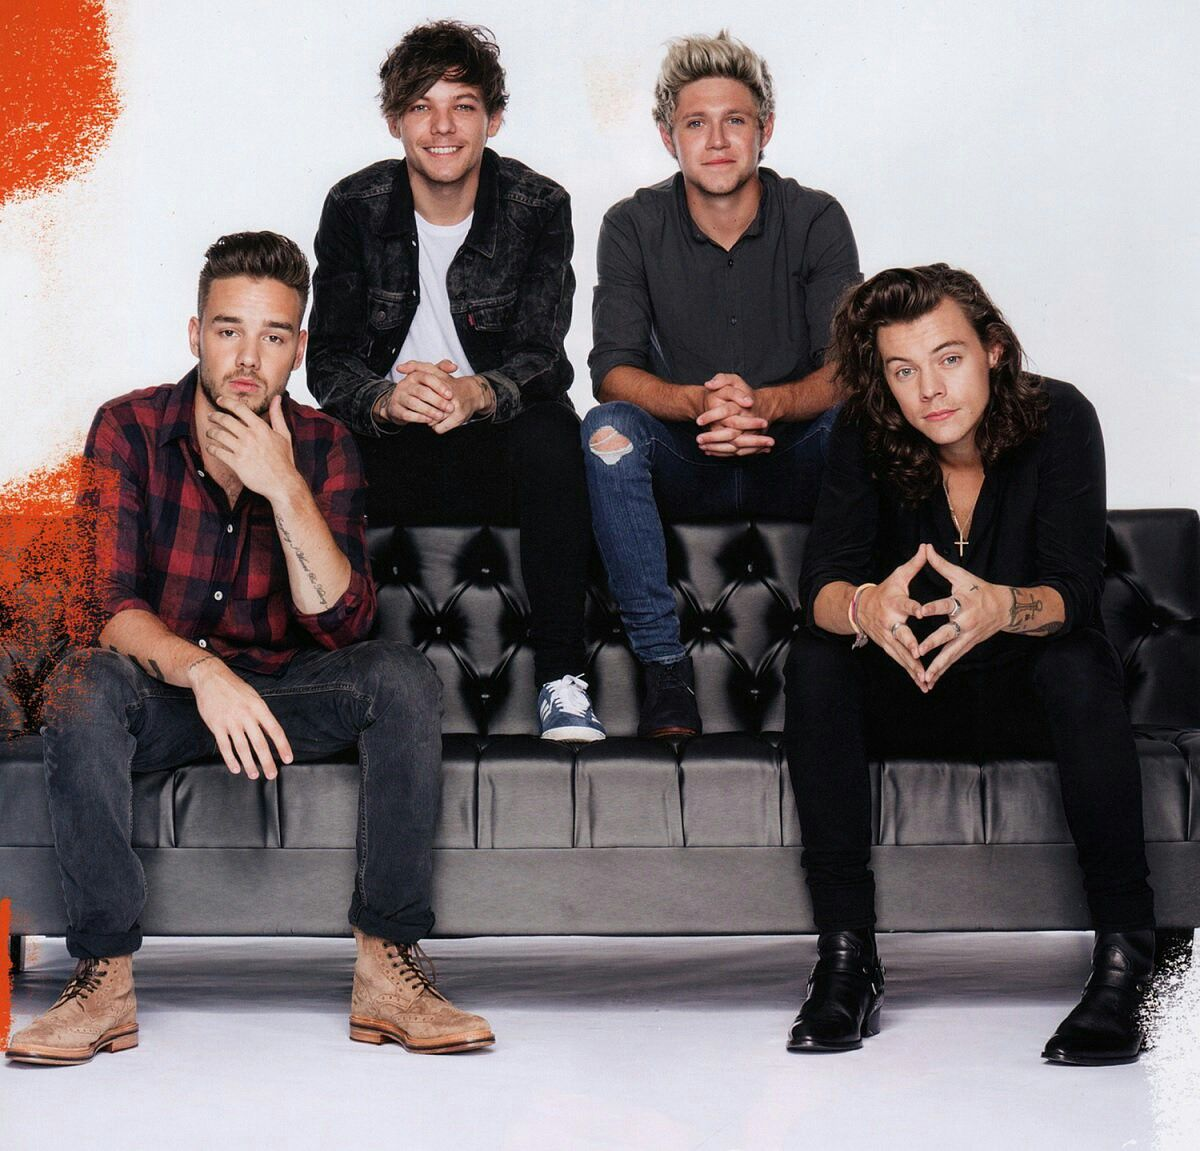 One Direction 2017 Photoshoot With Roses